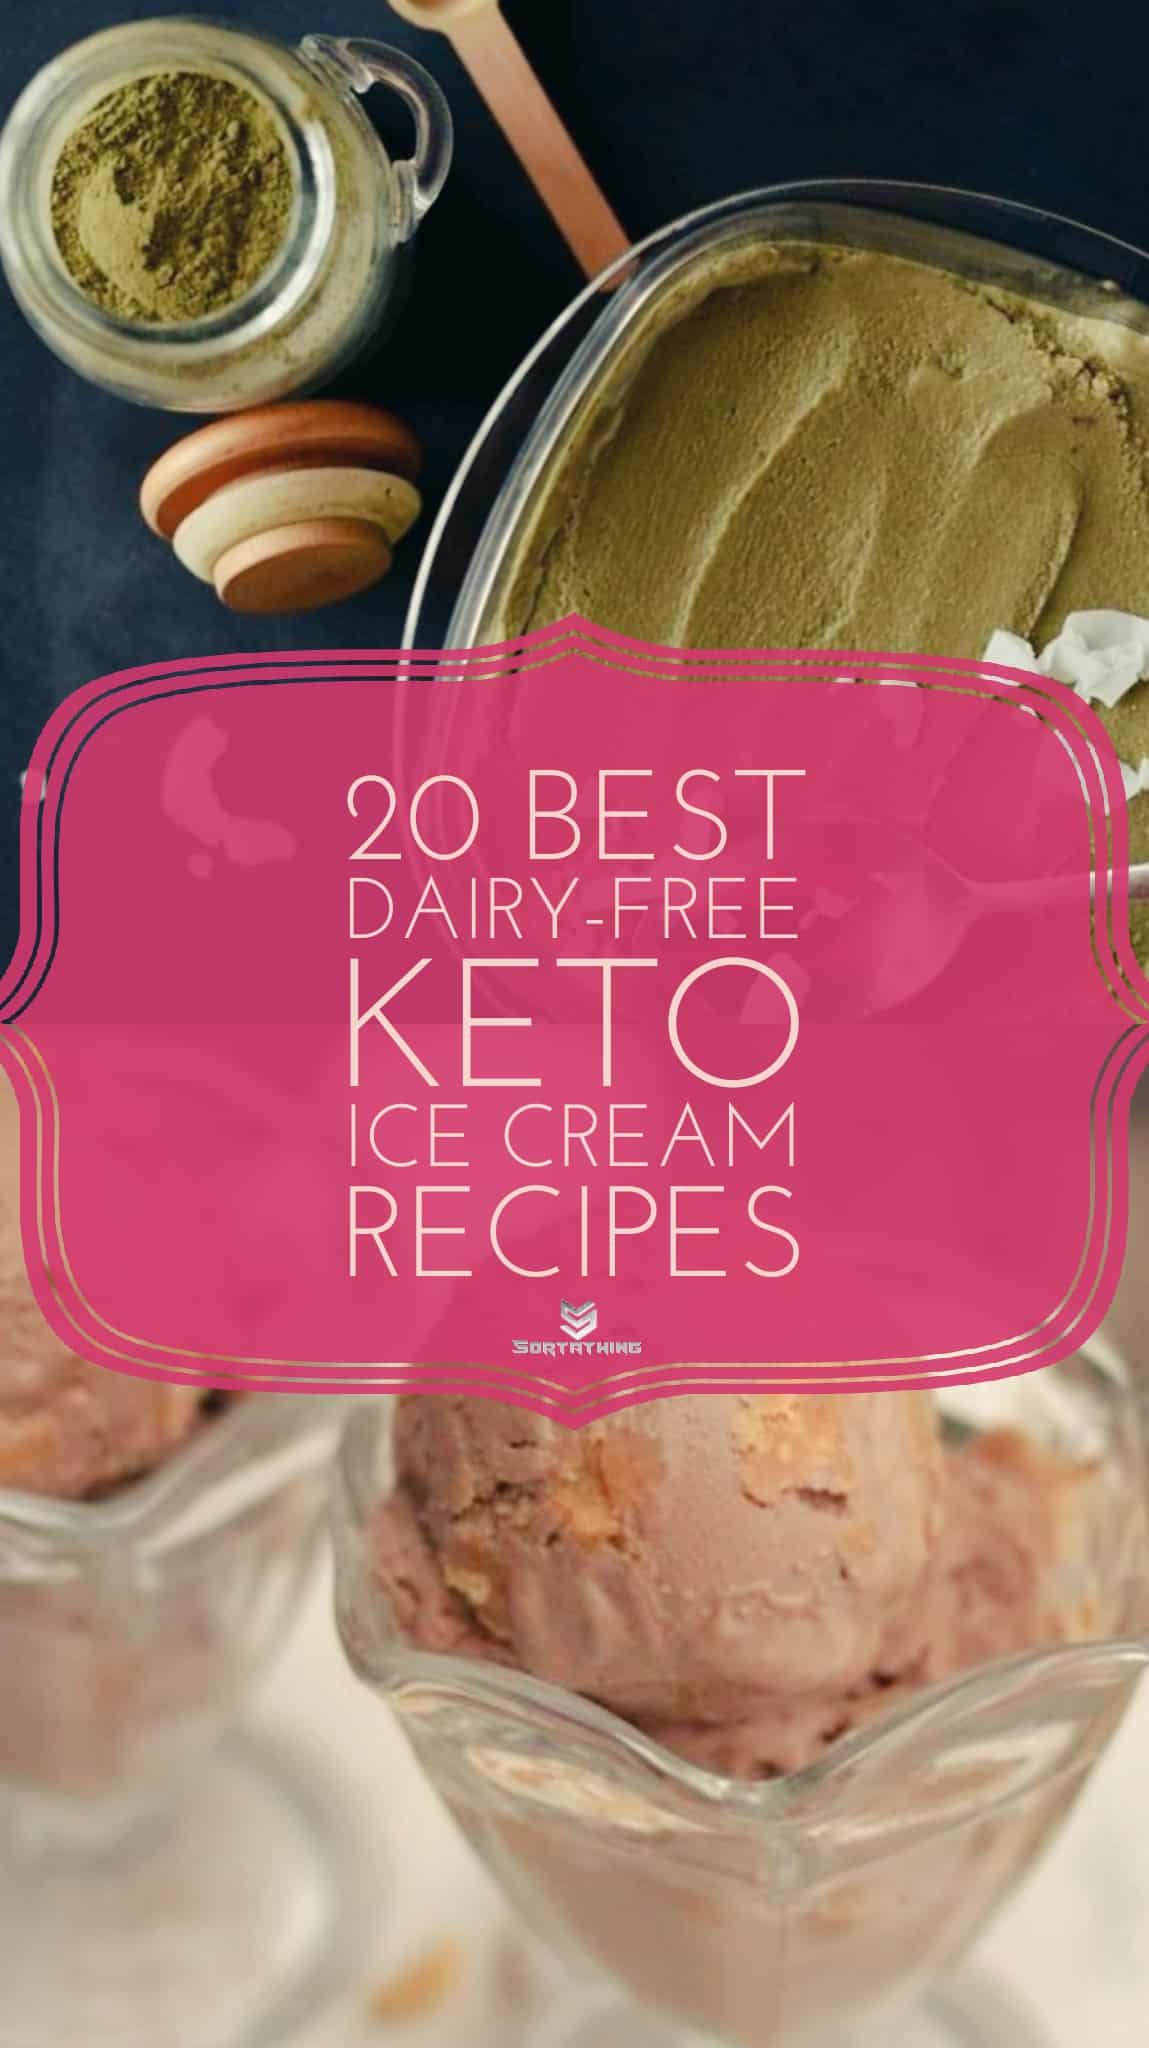 Keto Matcha  Superfood Ice Cream and Dairy-Free Bulletproof Chocolate Peanut Butter Ice Cream